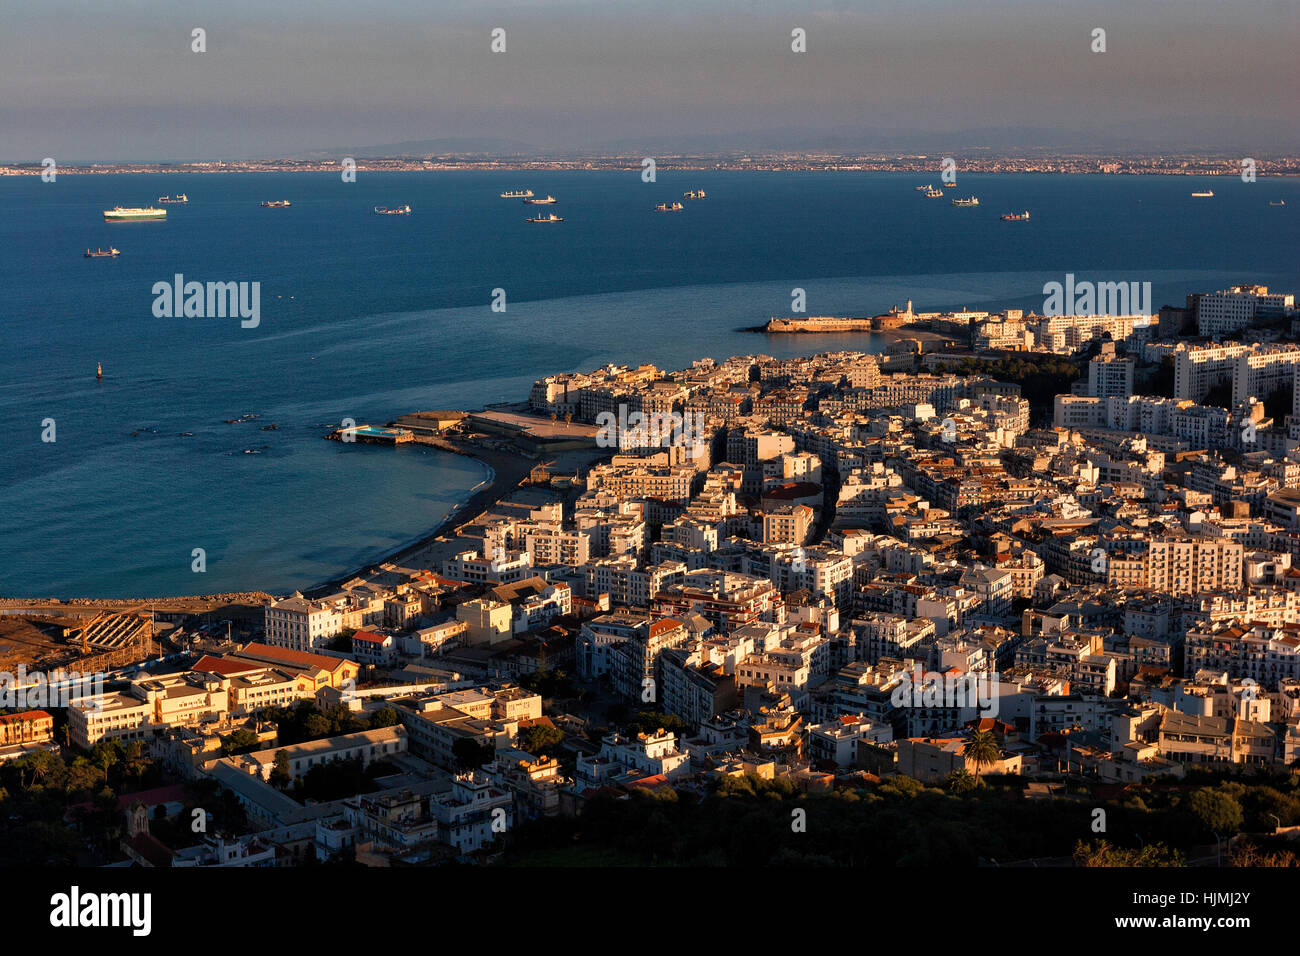 Algeria, Algier, view to the city from above - Stock Image